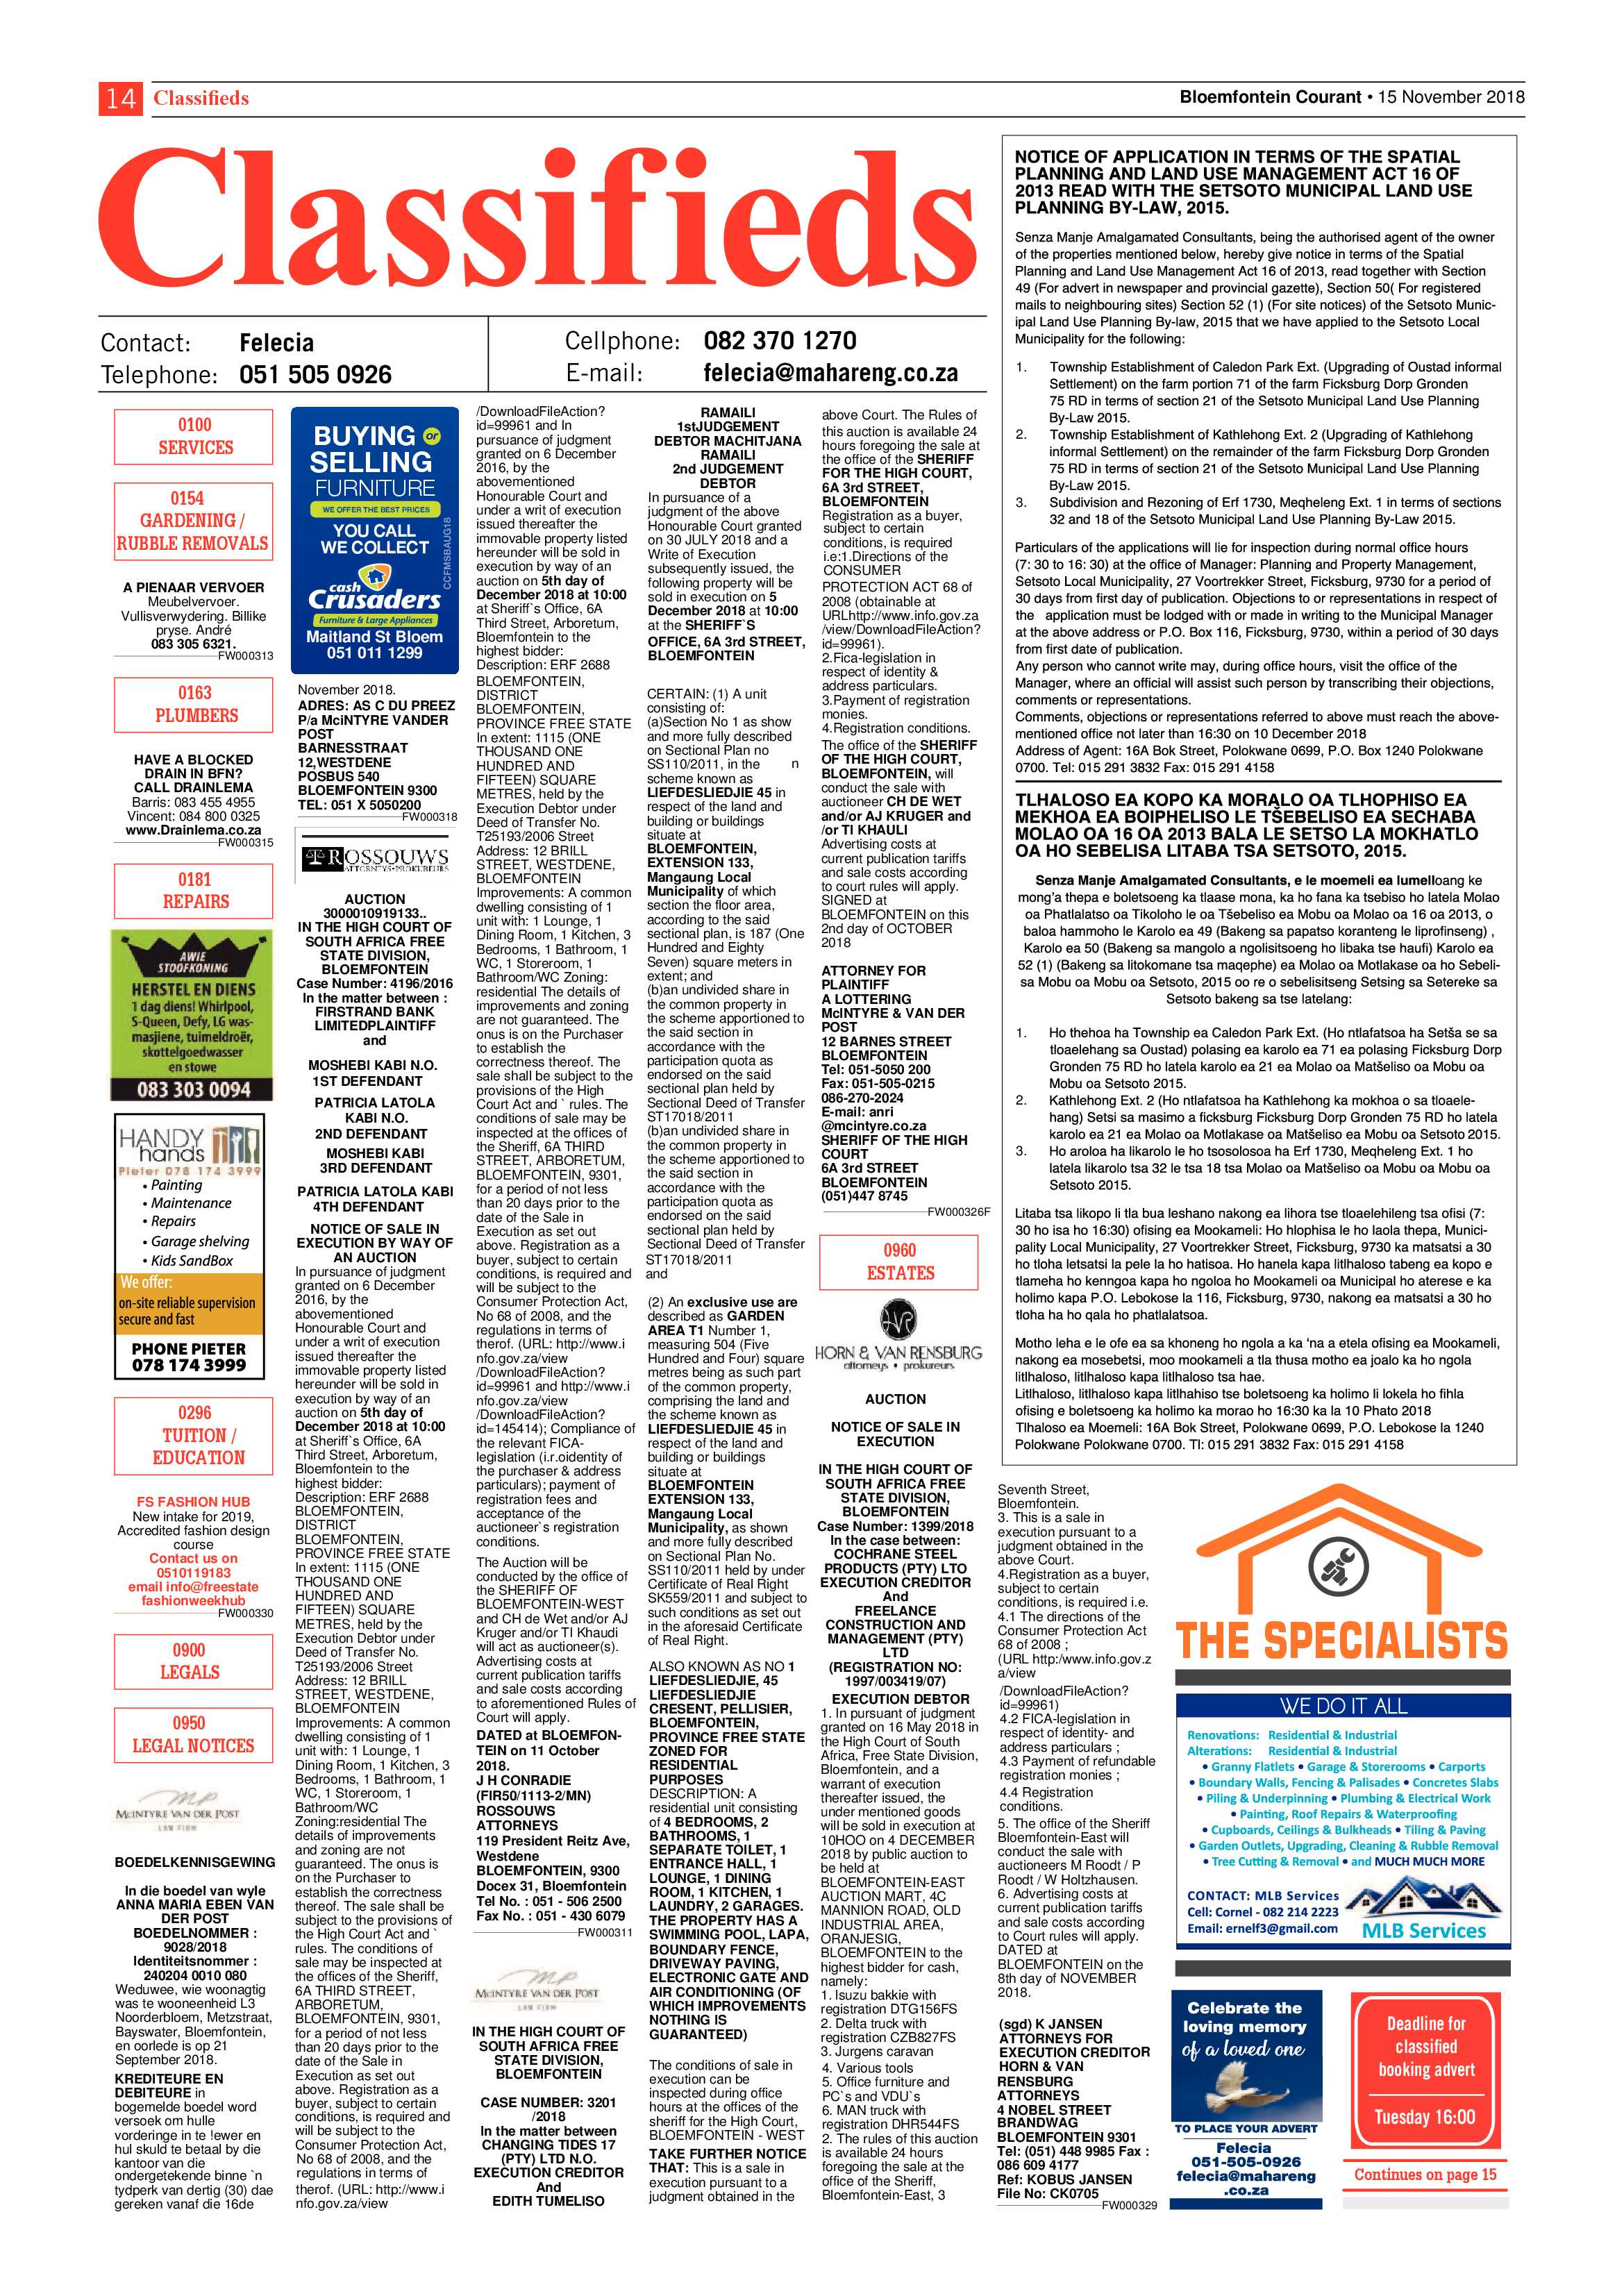 courant-15-november-2018-epapers-page-14